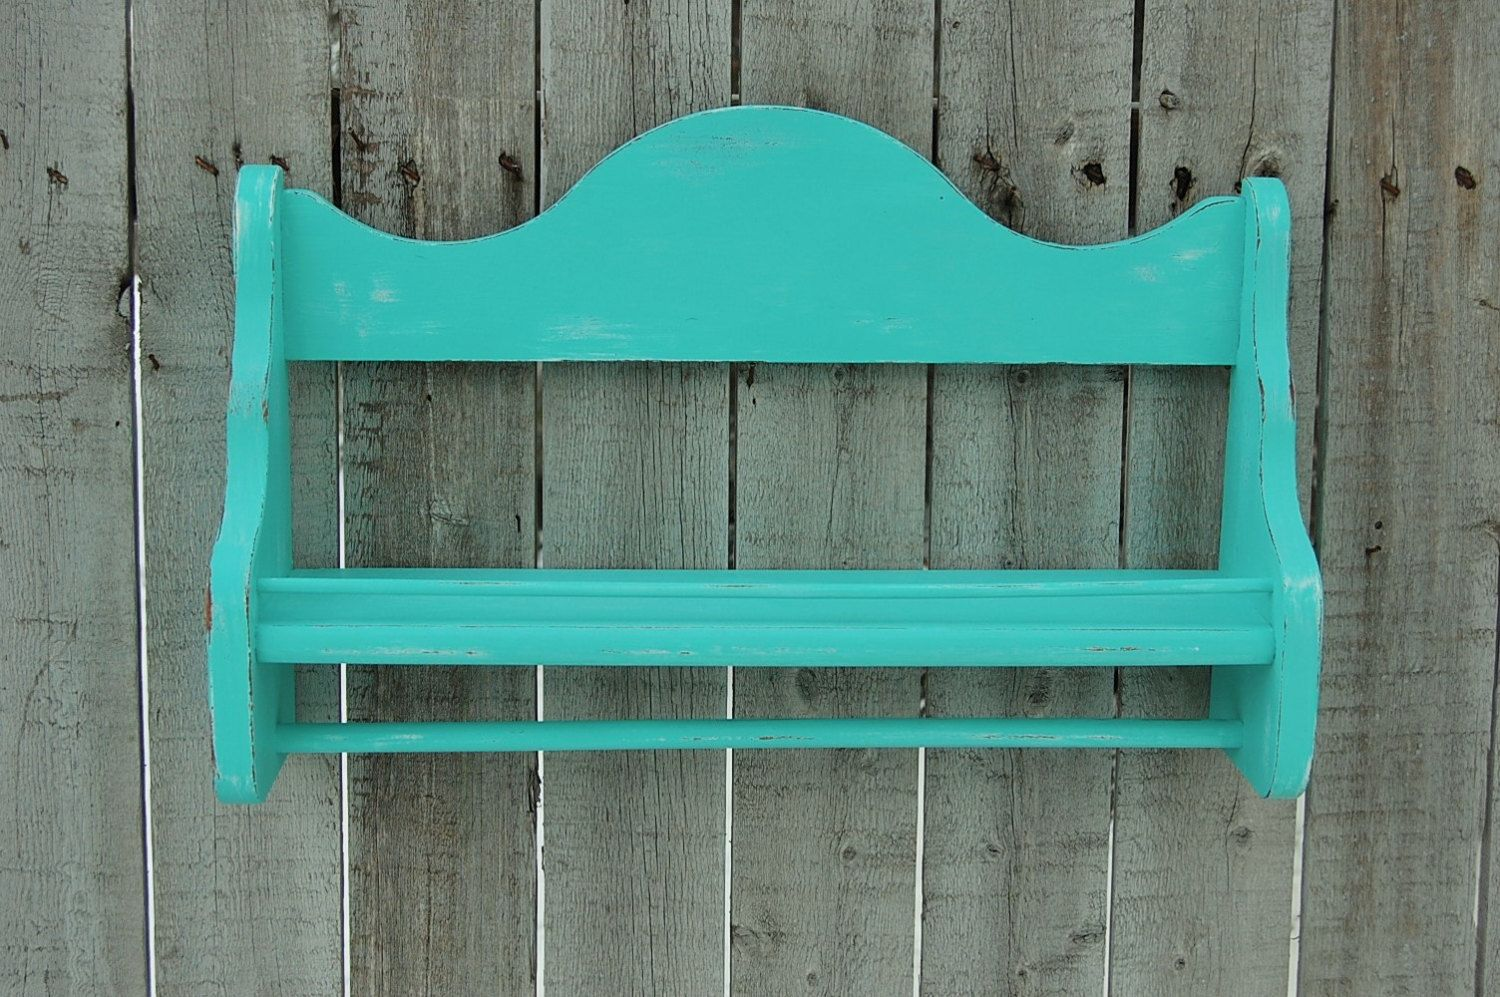 Spice Rack, Towel Bar, Towel Holder, Shabby Chic, Turquoise, Blue ...